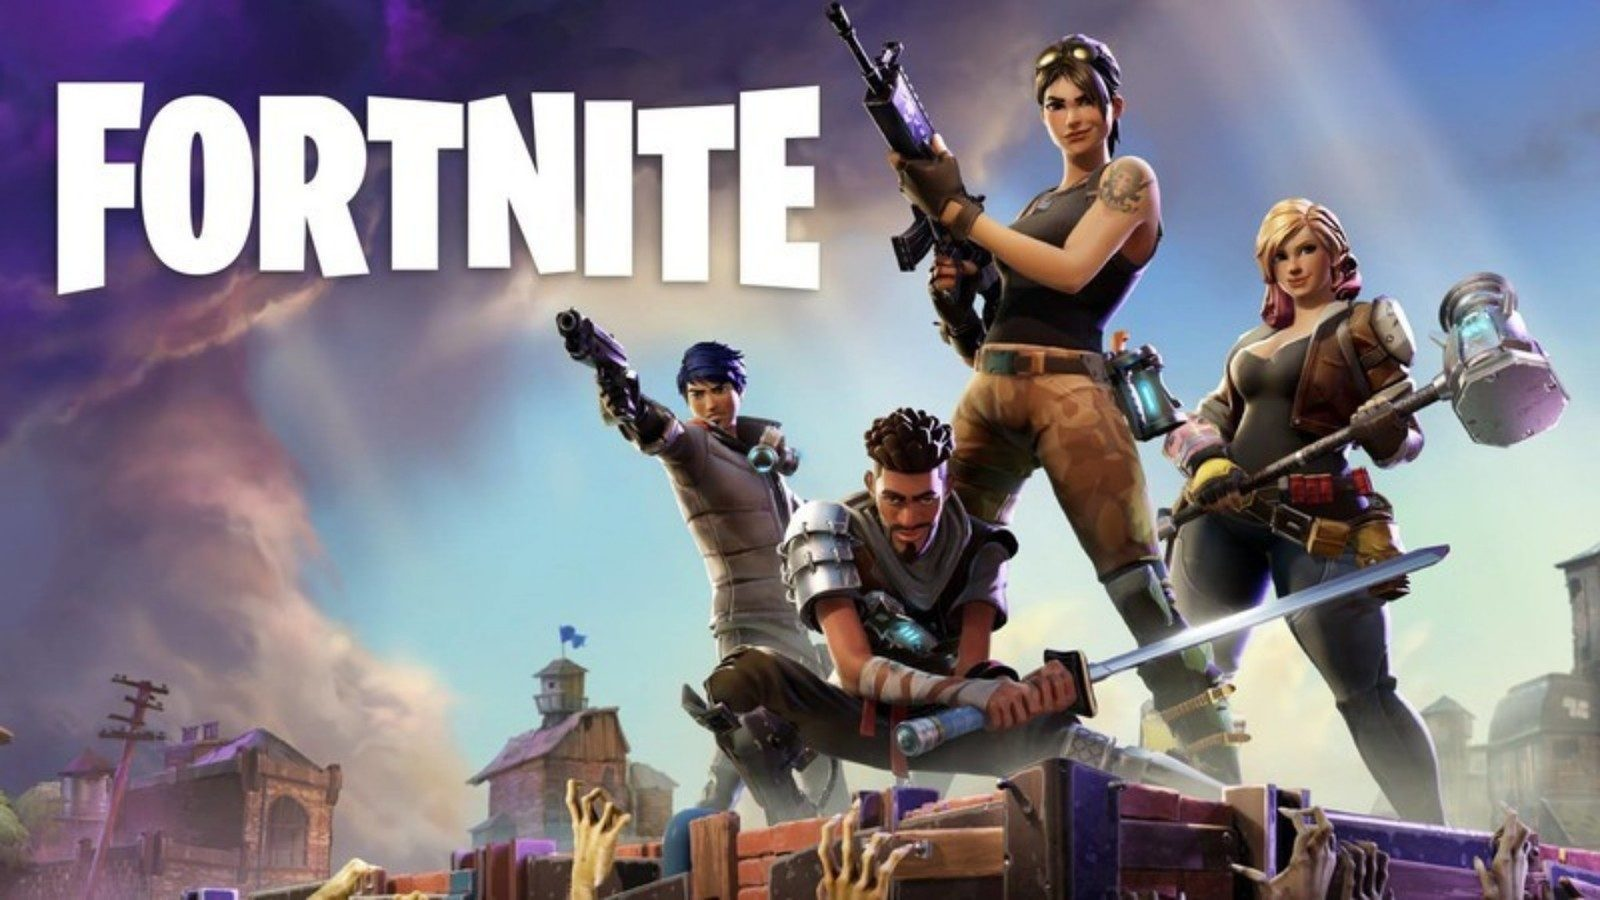 Market Data for 2018 Reveals Dominance of Mobile Gaming and the Battle Royale Genre